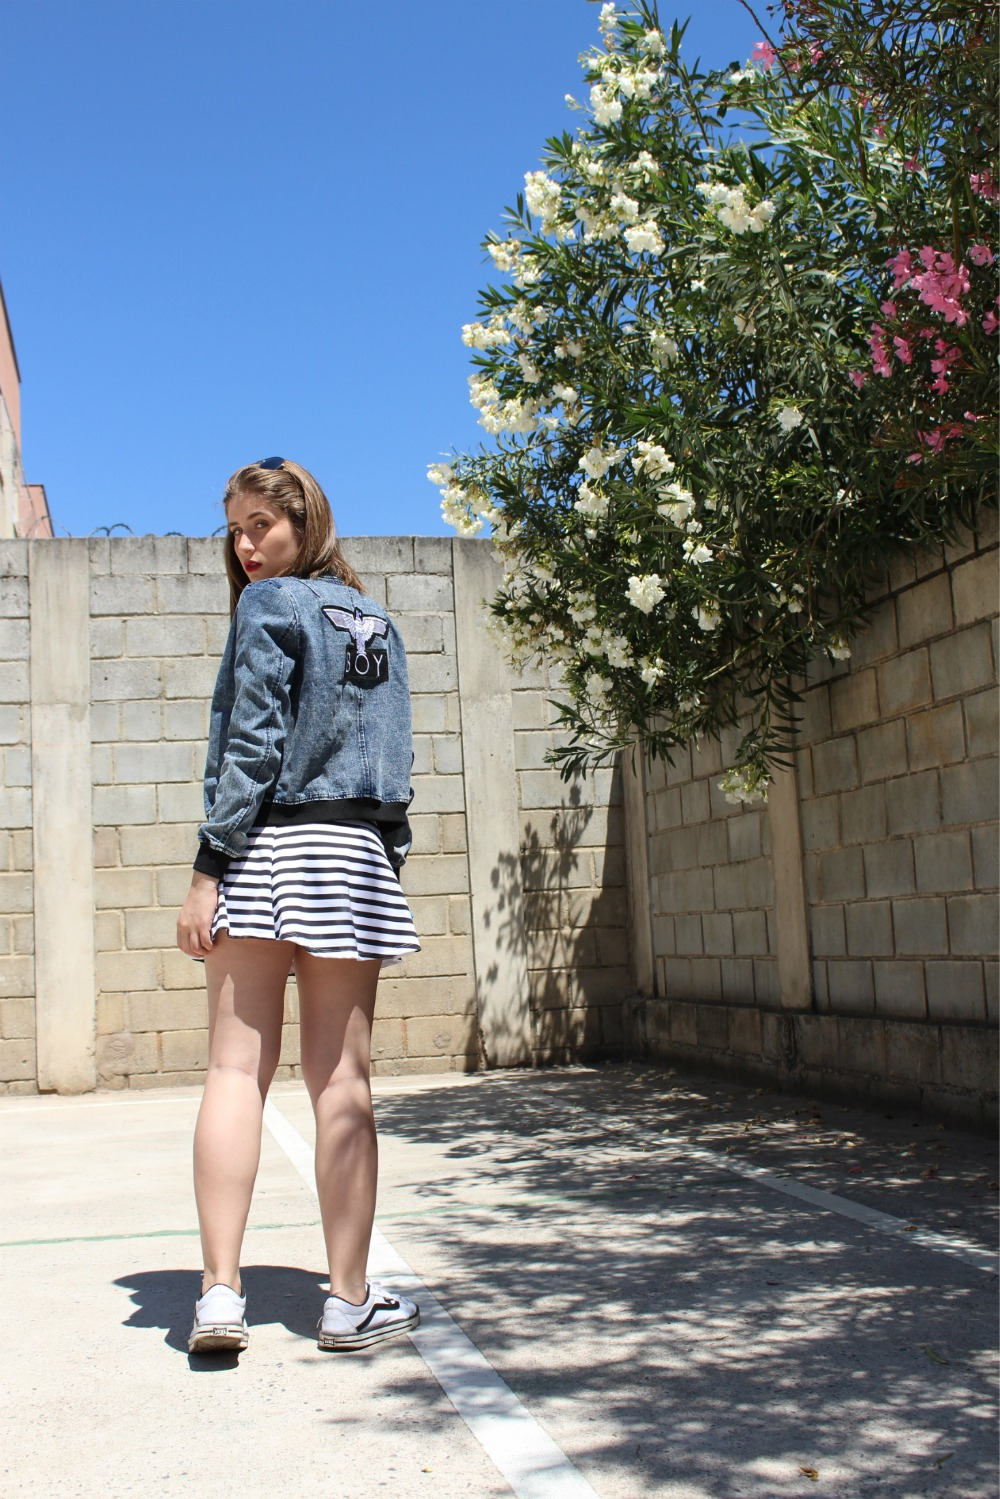 aninha-carvalho-look-do-dia-jacket-jeans